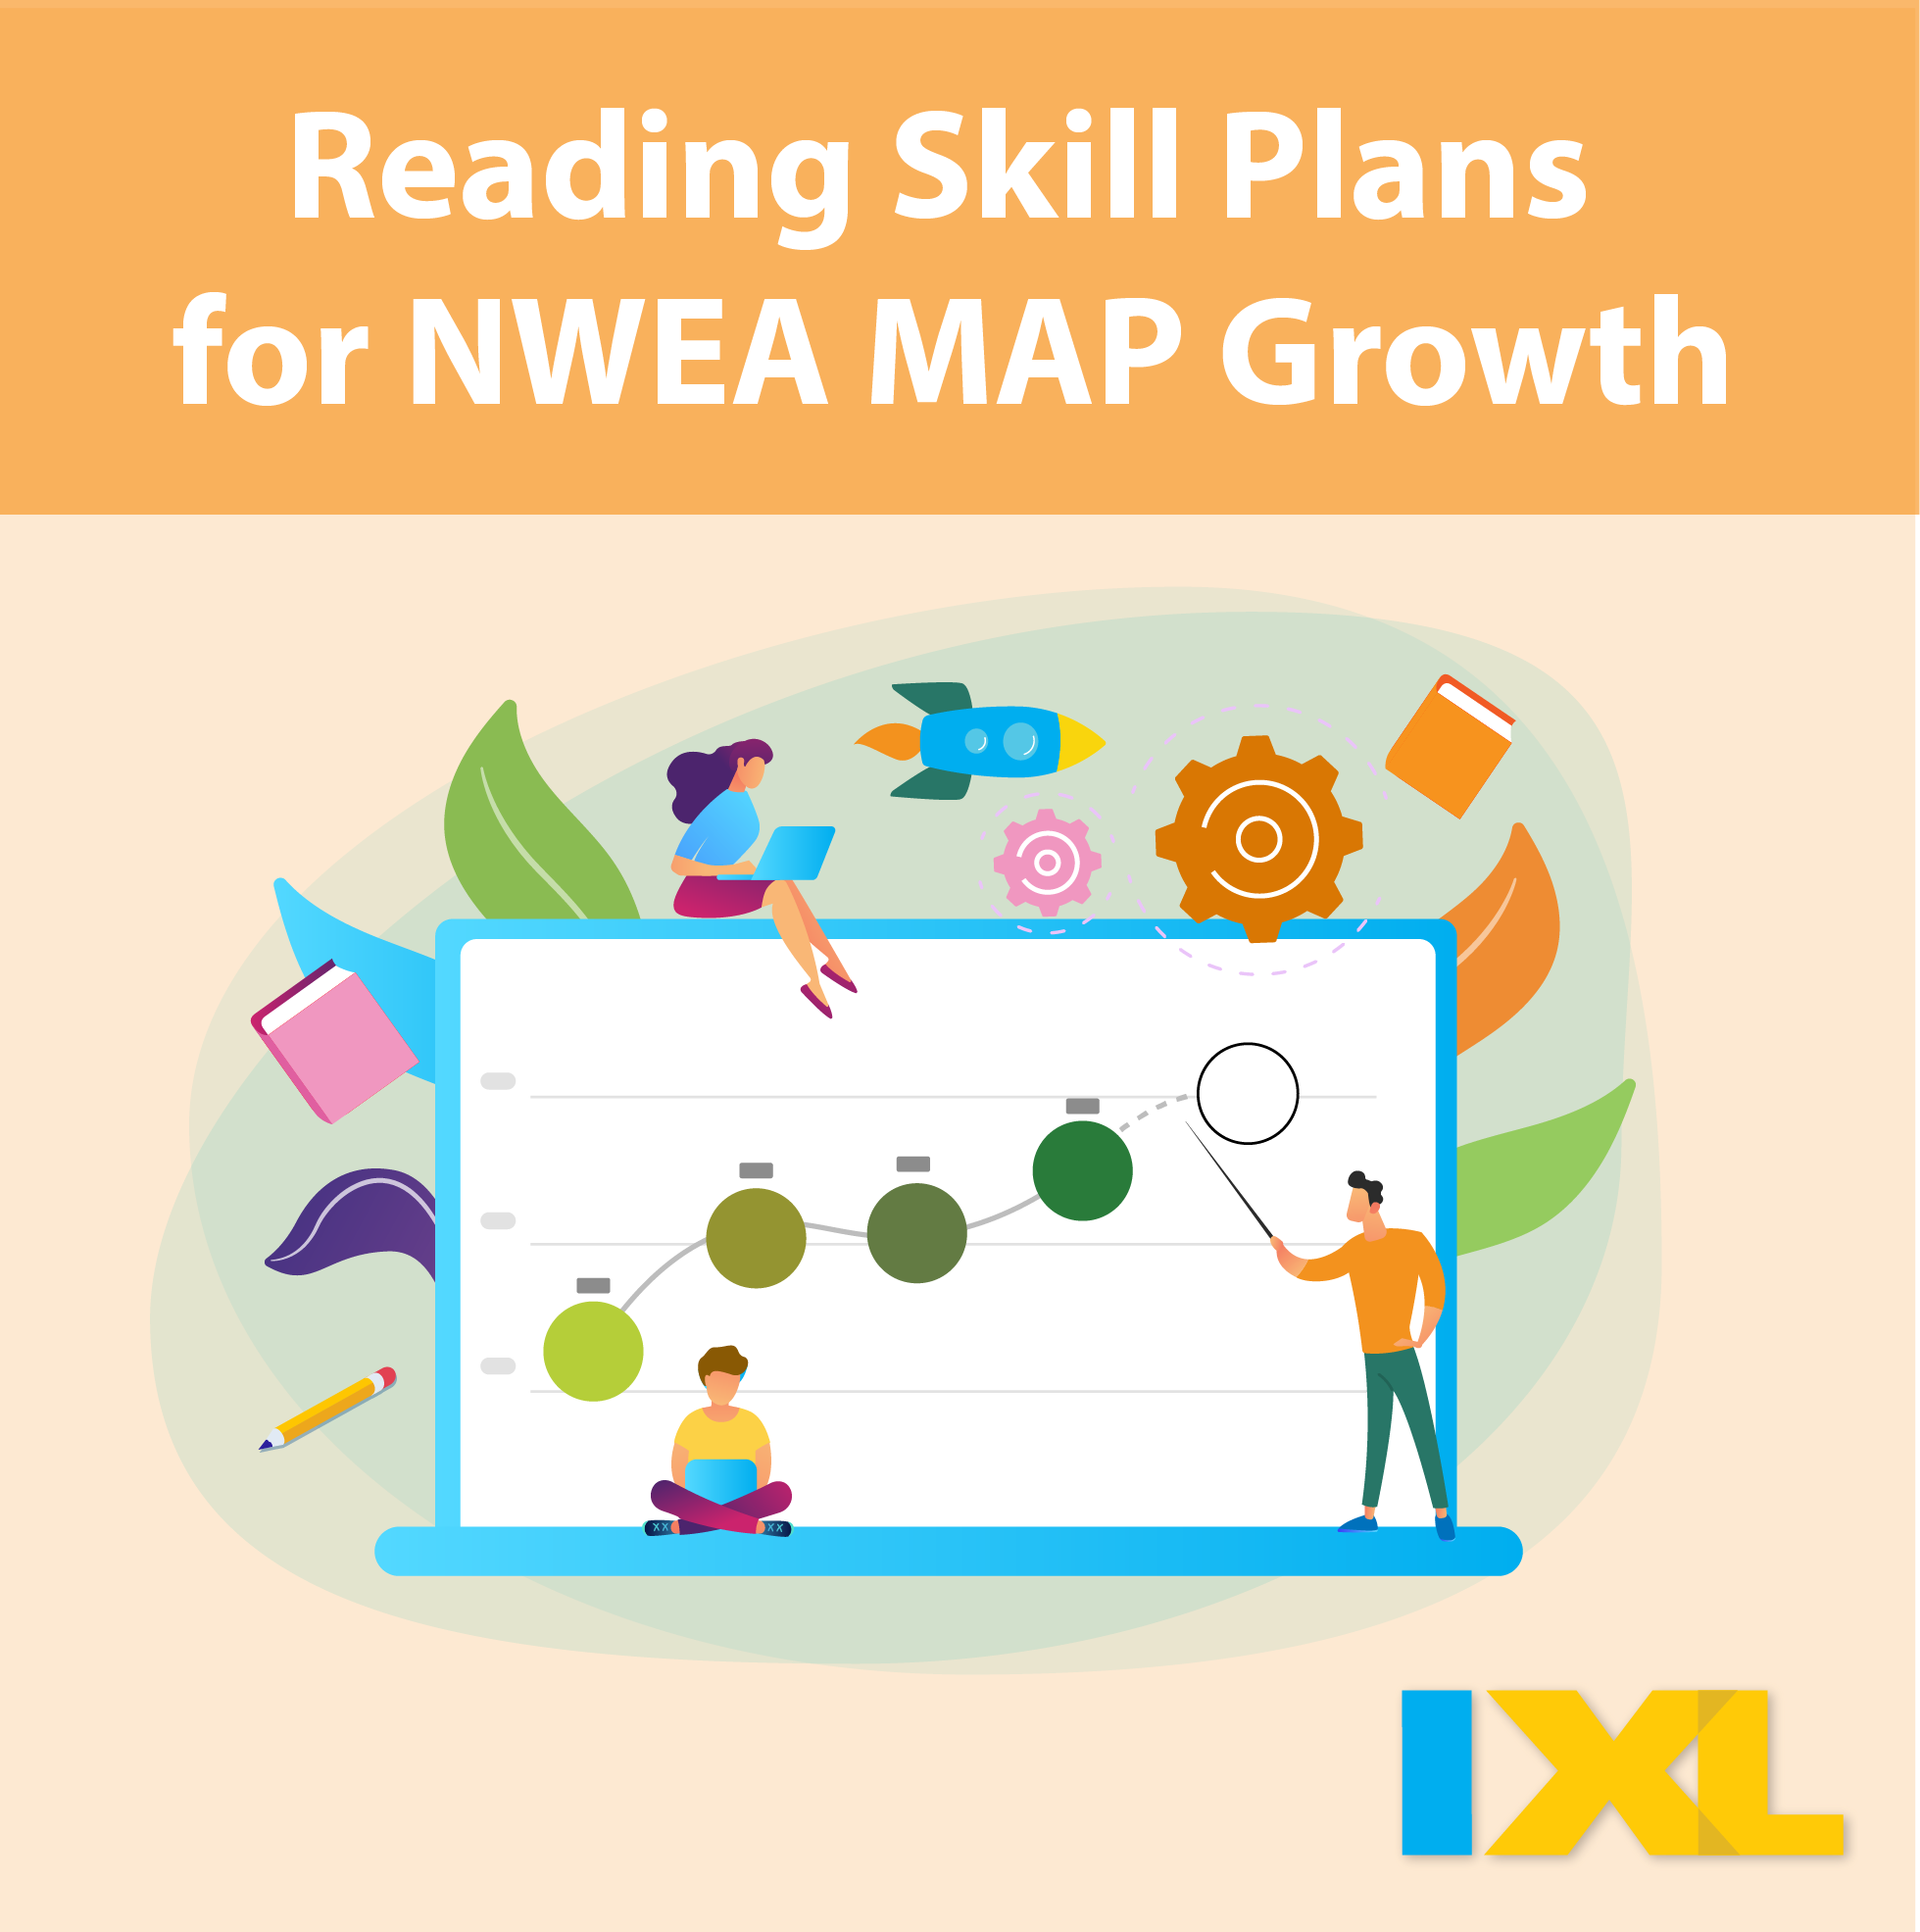 New Reading skill plan for the NWEA MAP Growth!